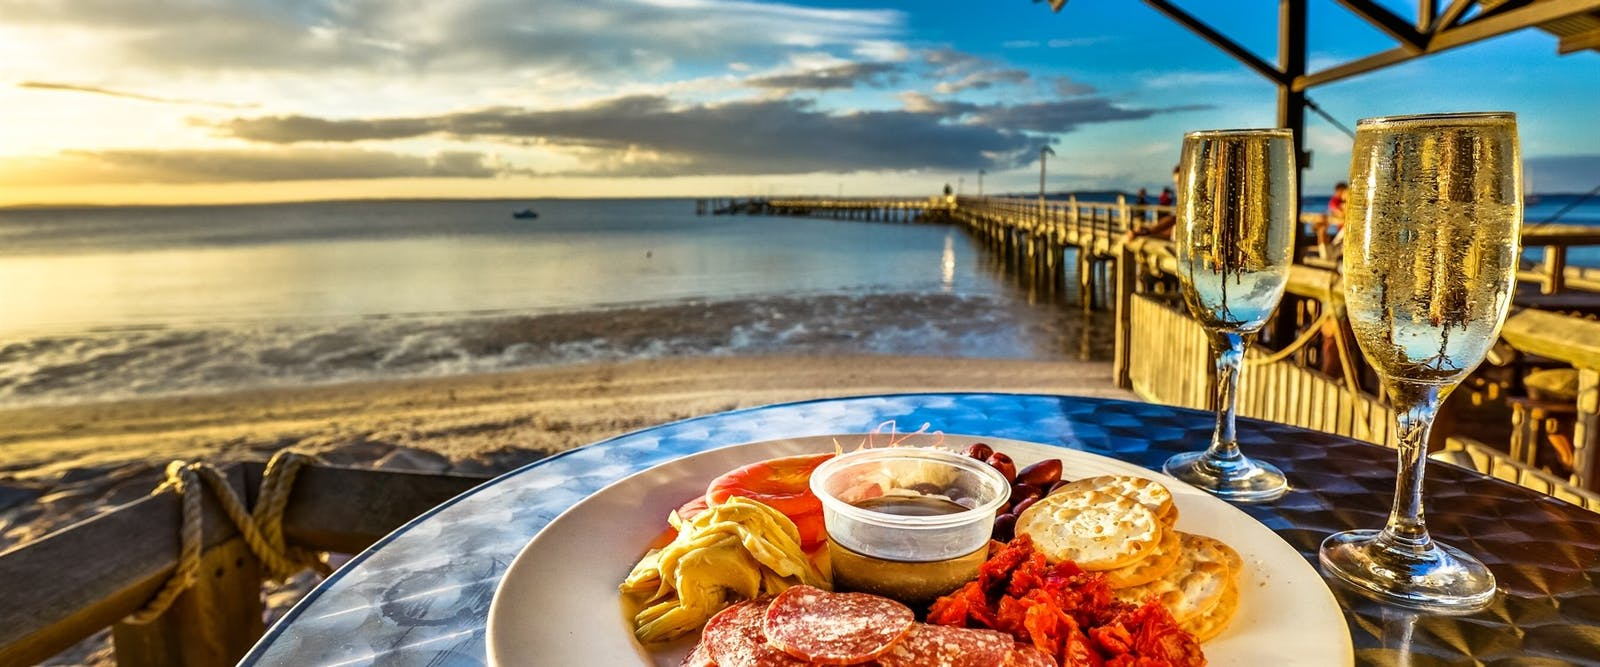 Seaside dining, Kingfisher Bay Resort, Fraser Island